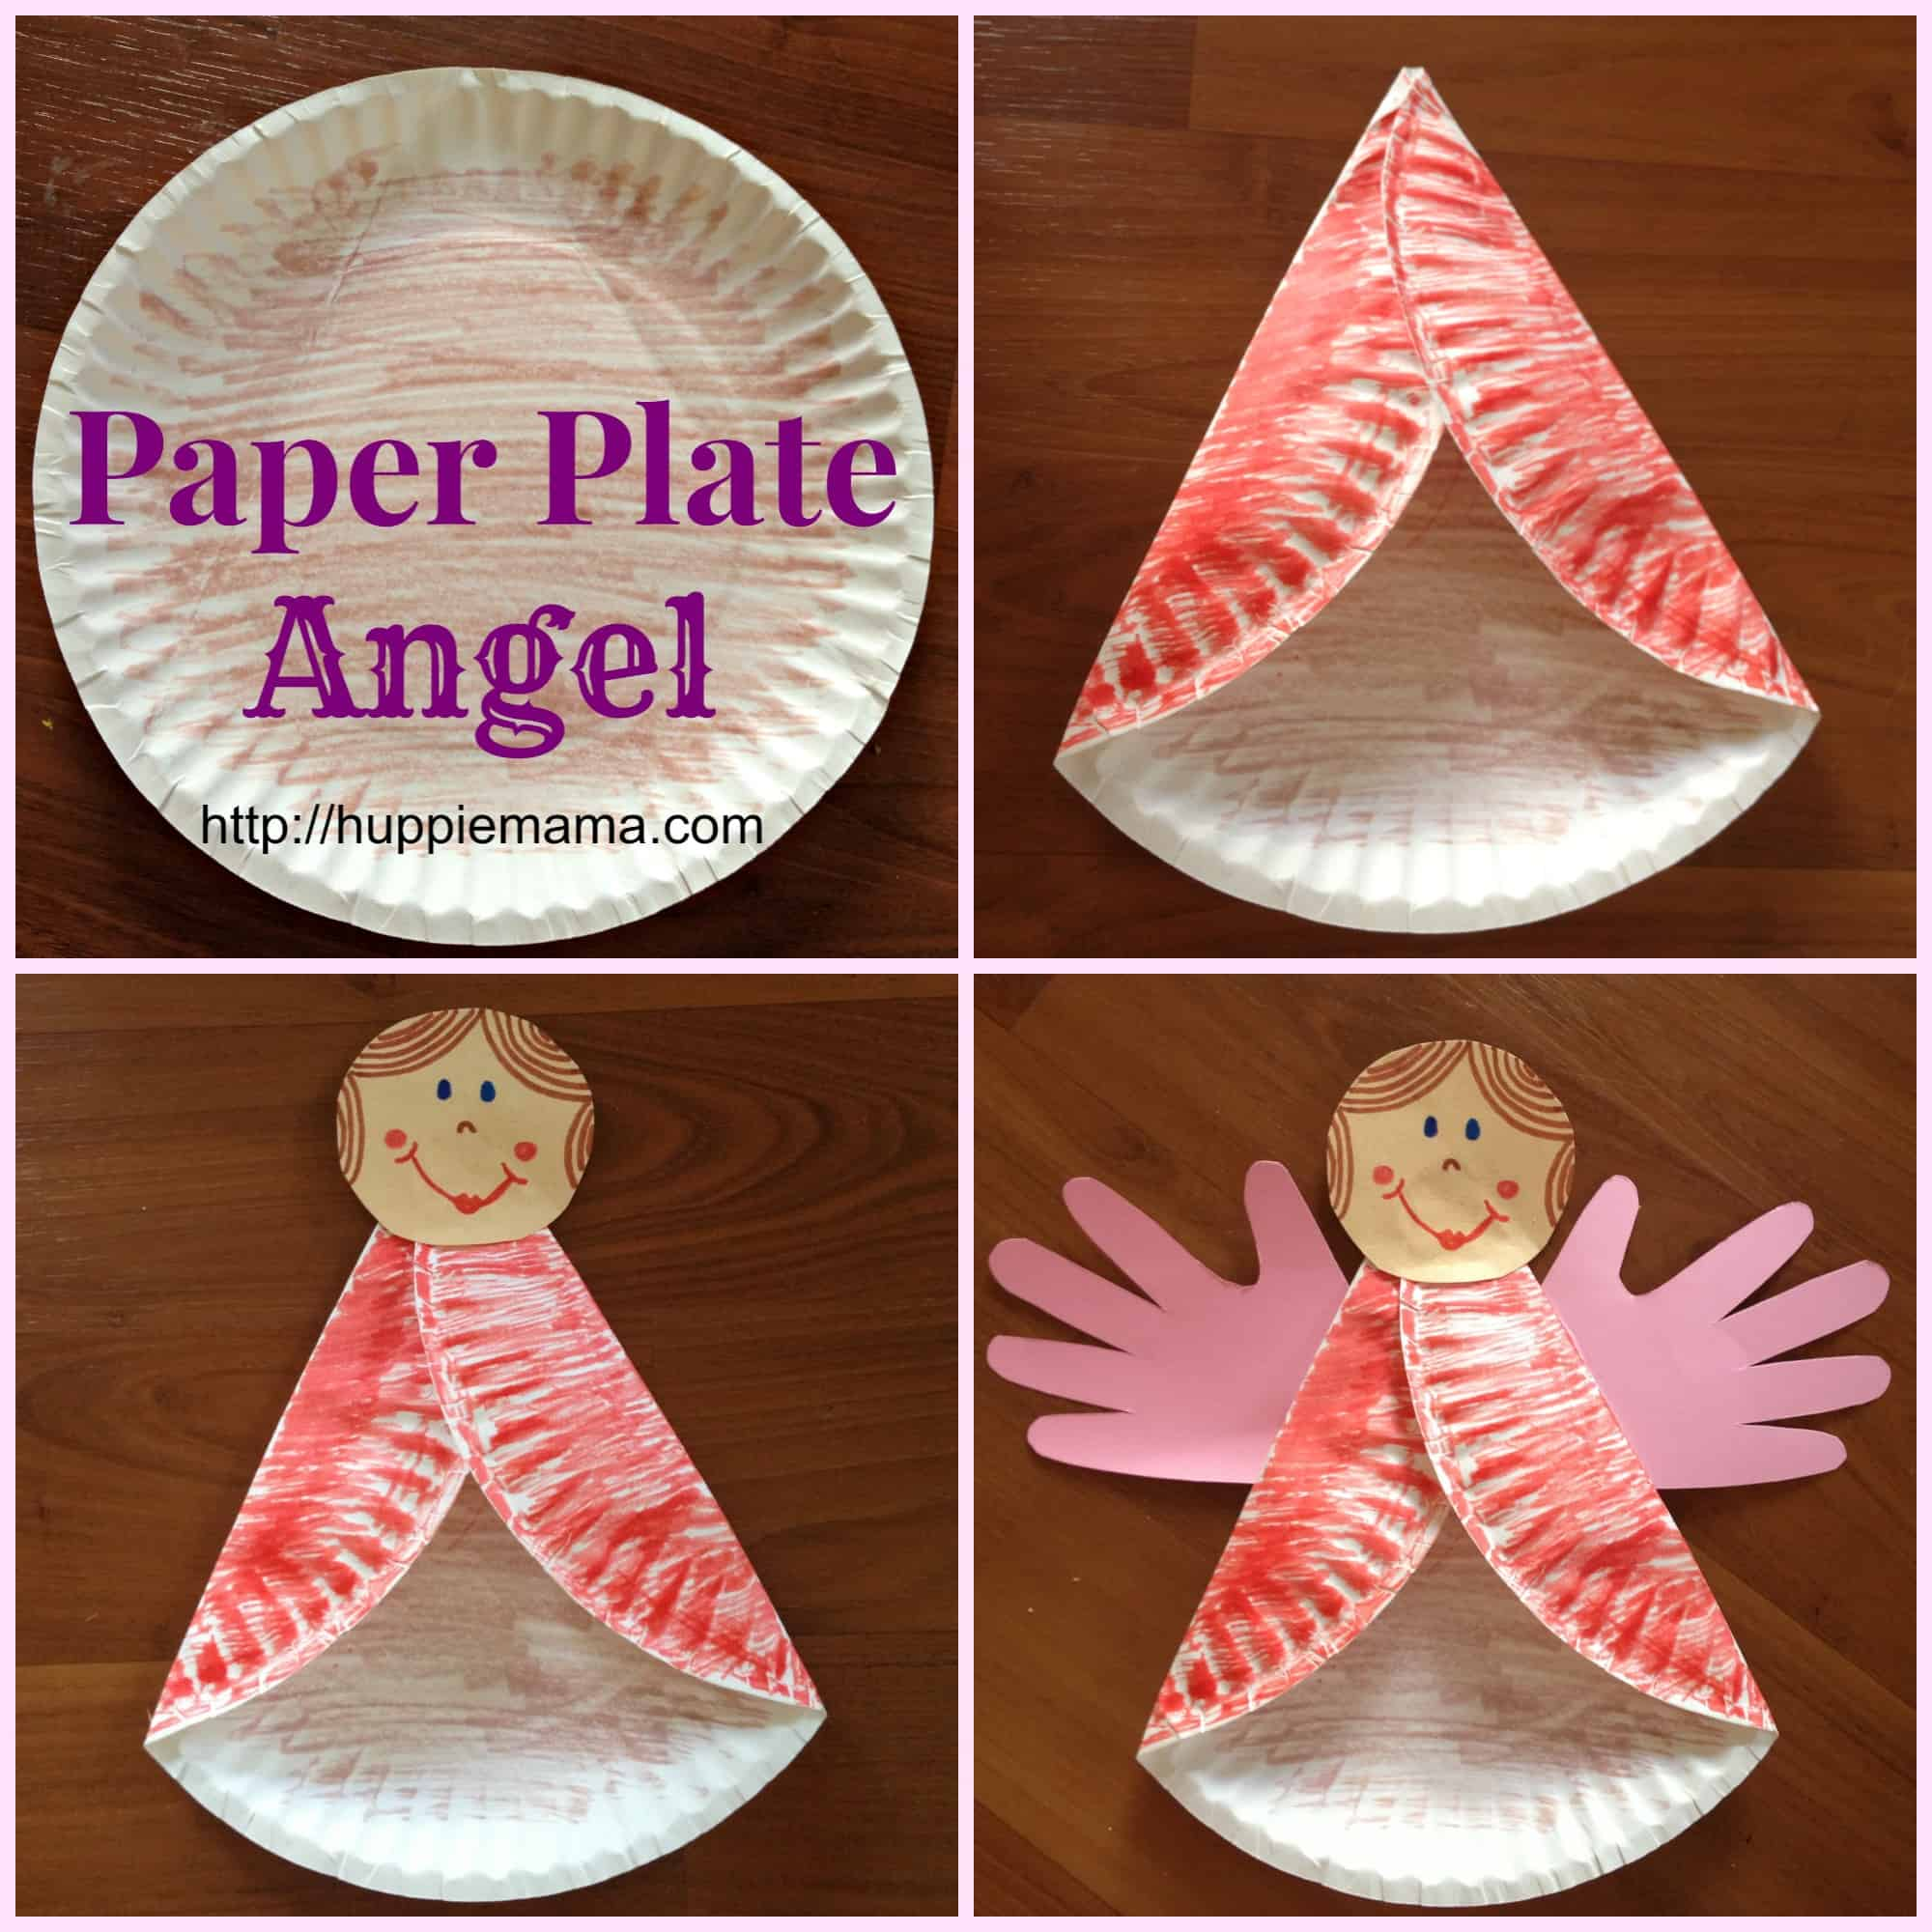 Paper plate angel with handprint wings